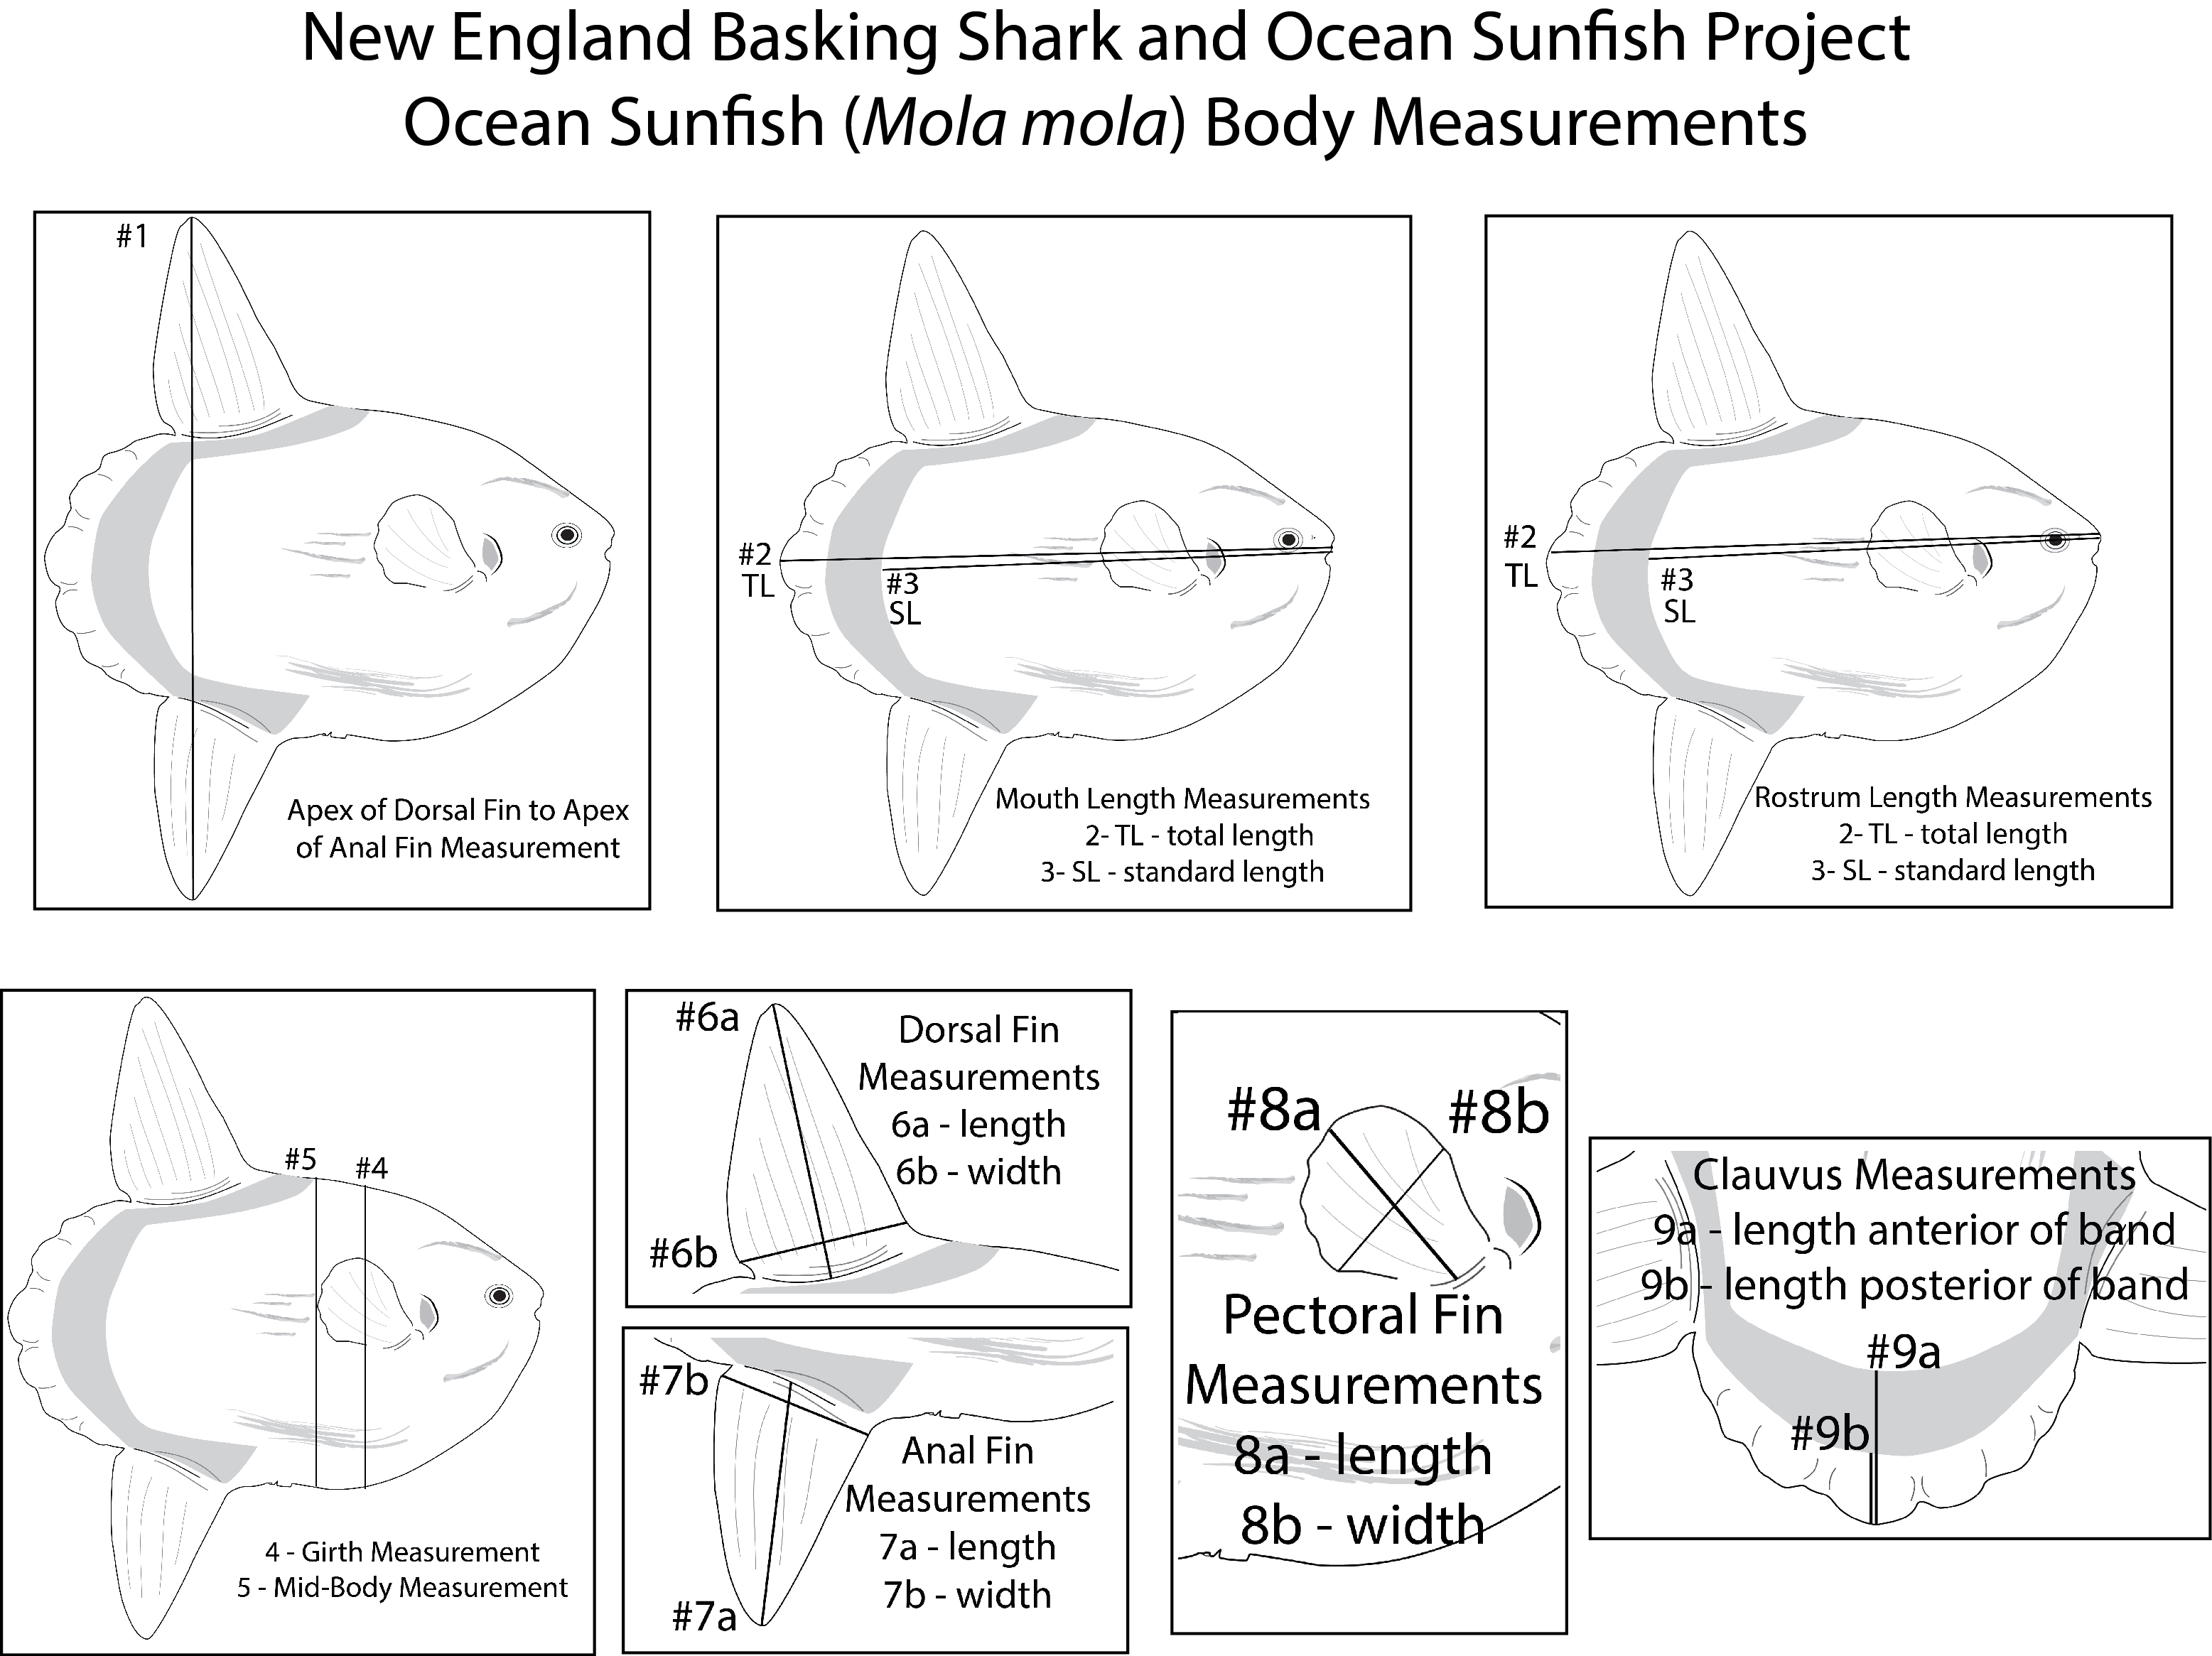 Body Measurements for Ocean Sunfish